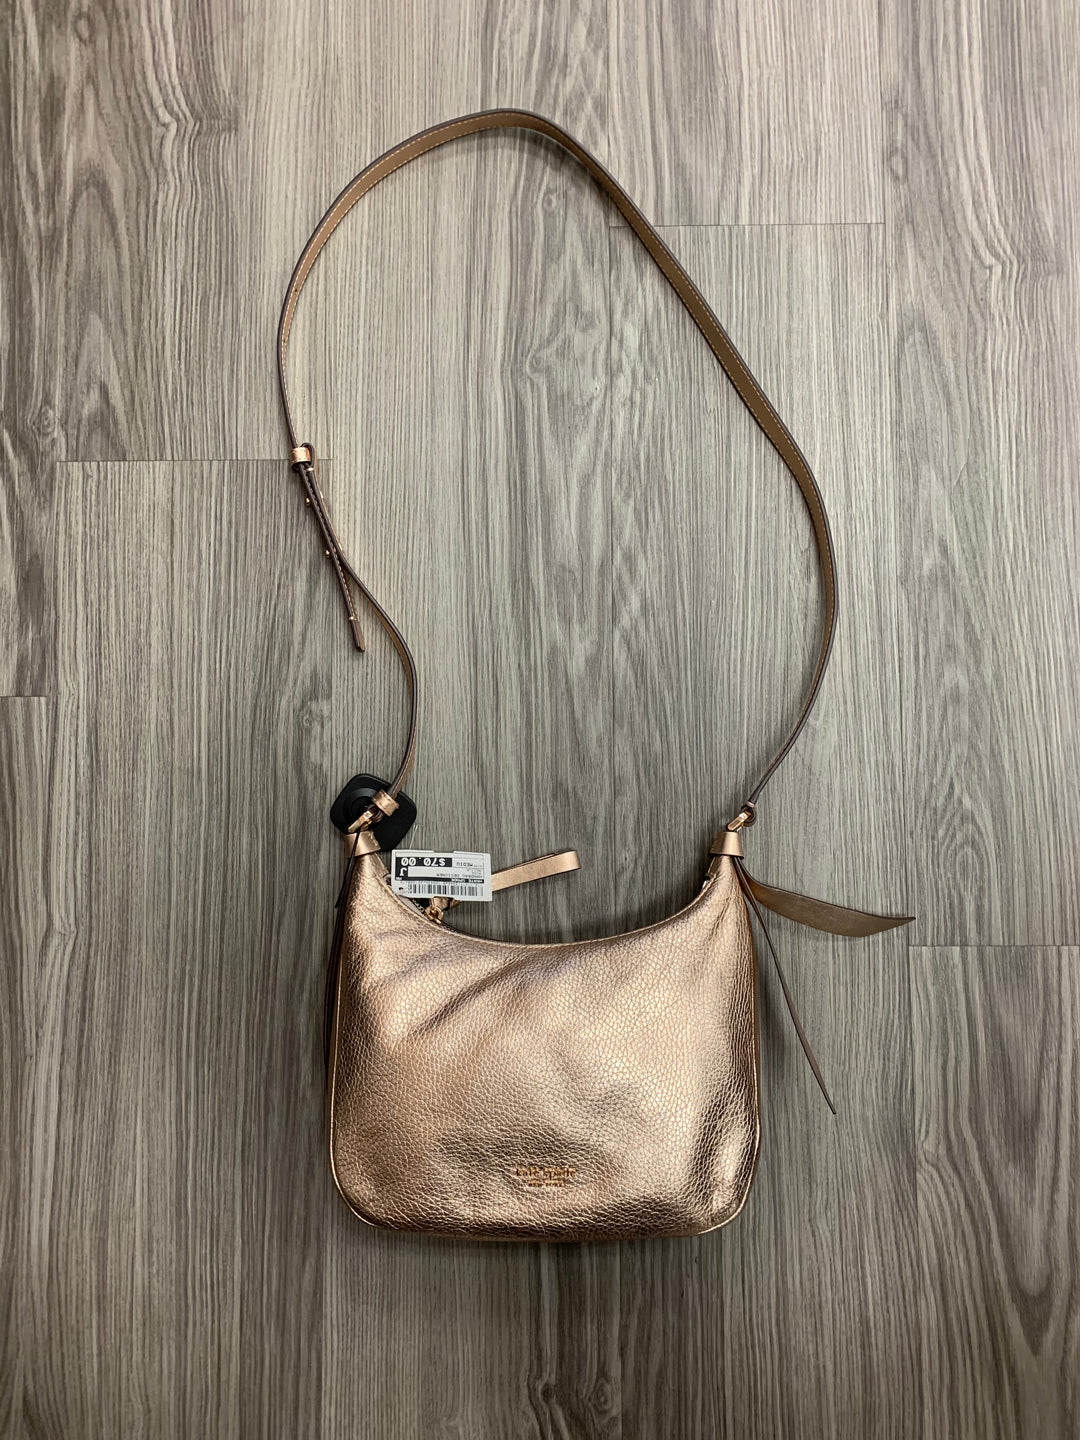 Primary Photo - BRAND: KATE SPADE <BR>STYLE: HANDBAG DESIGNER <BR>COLOR: ROSE <BR>SIZE: MEDIUM <BR>SKU: 174-17477-3349